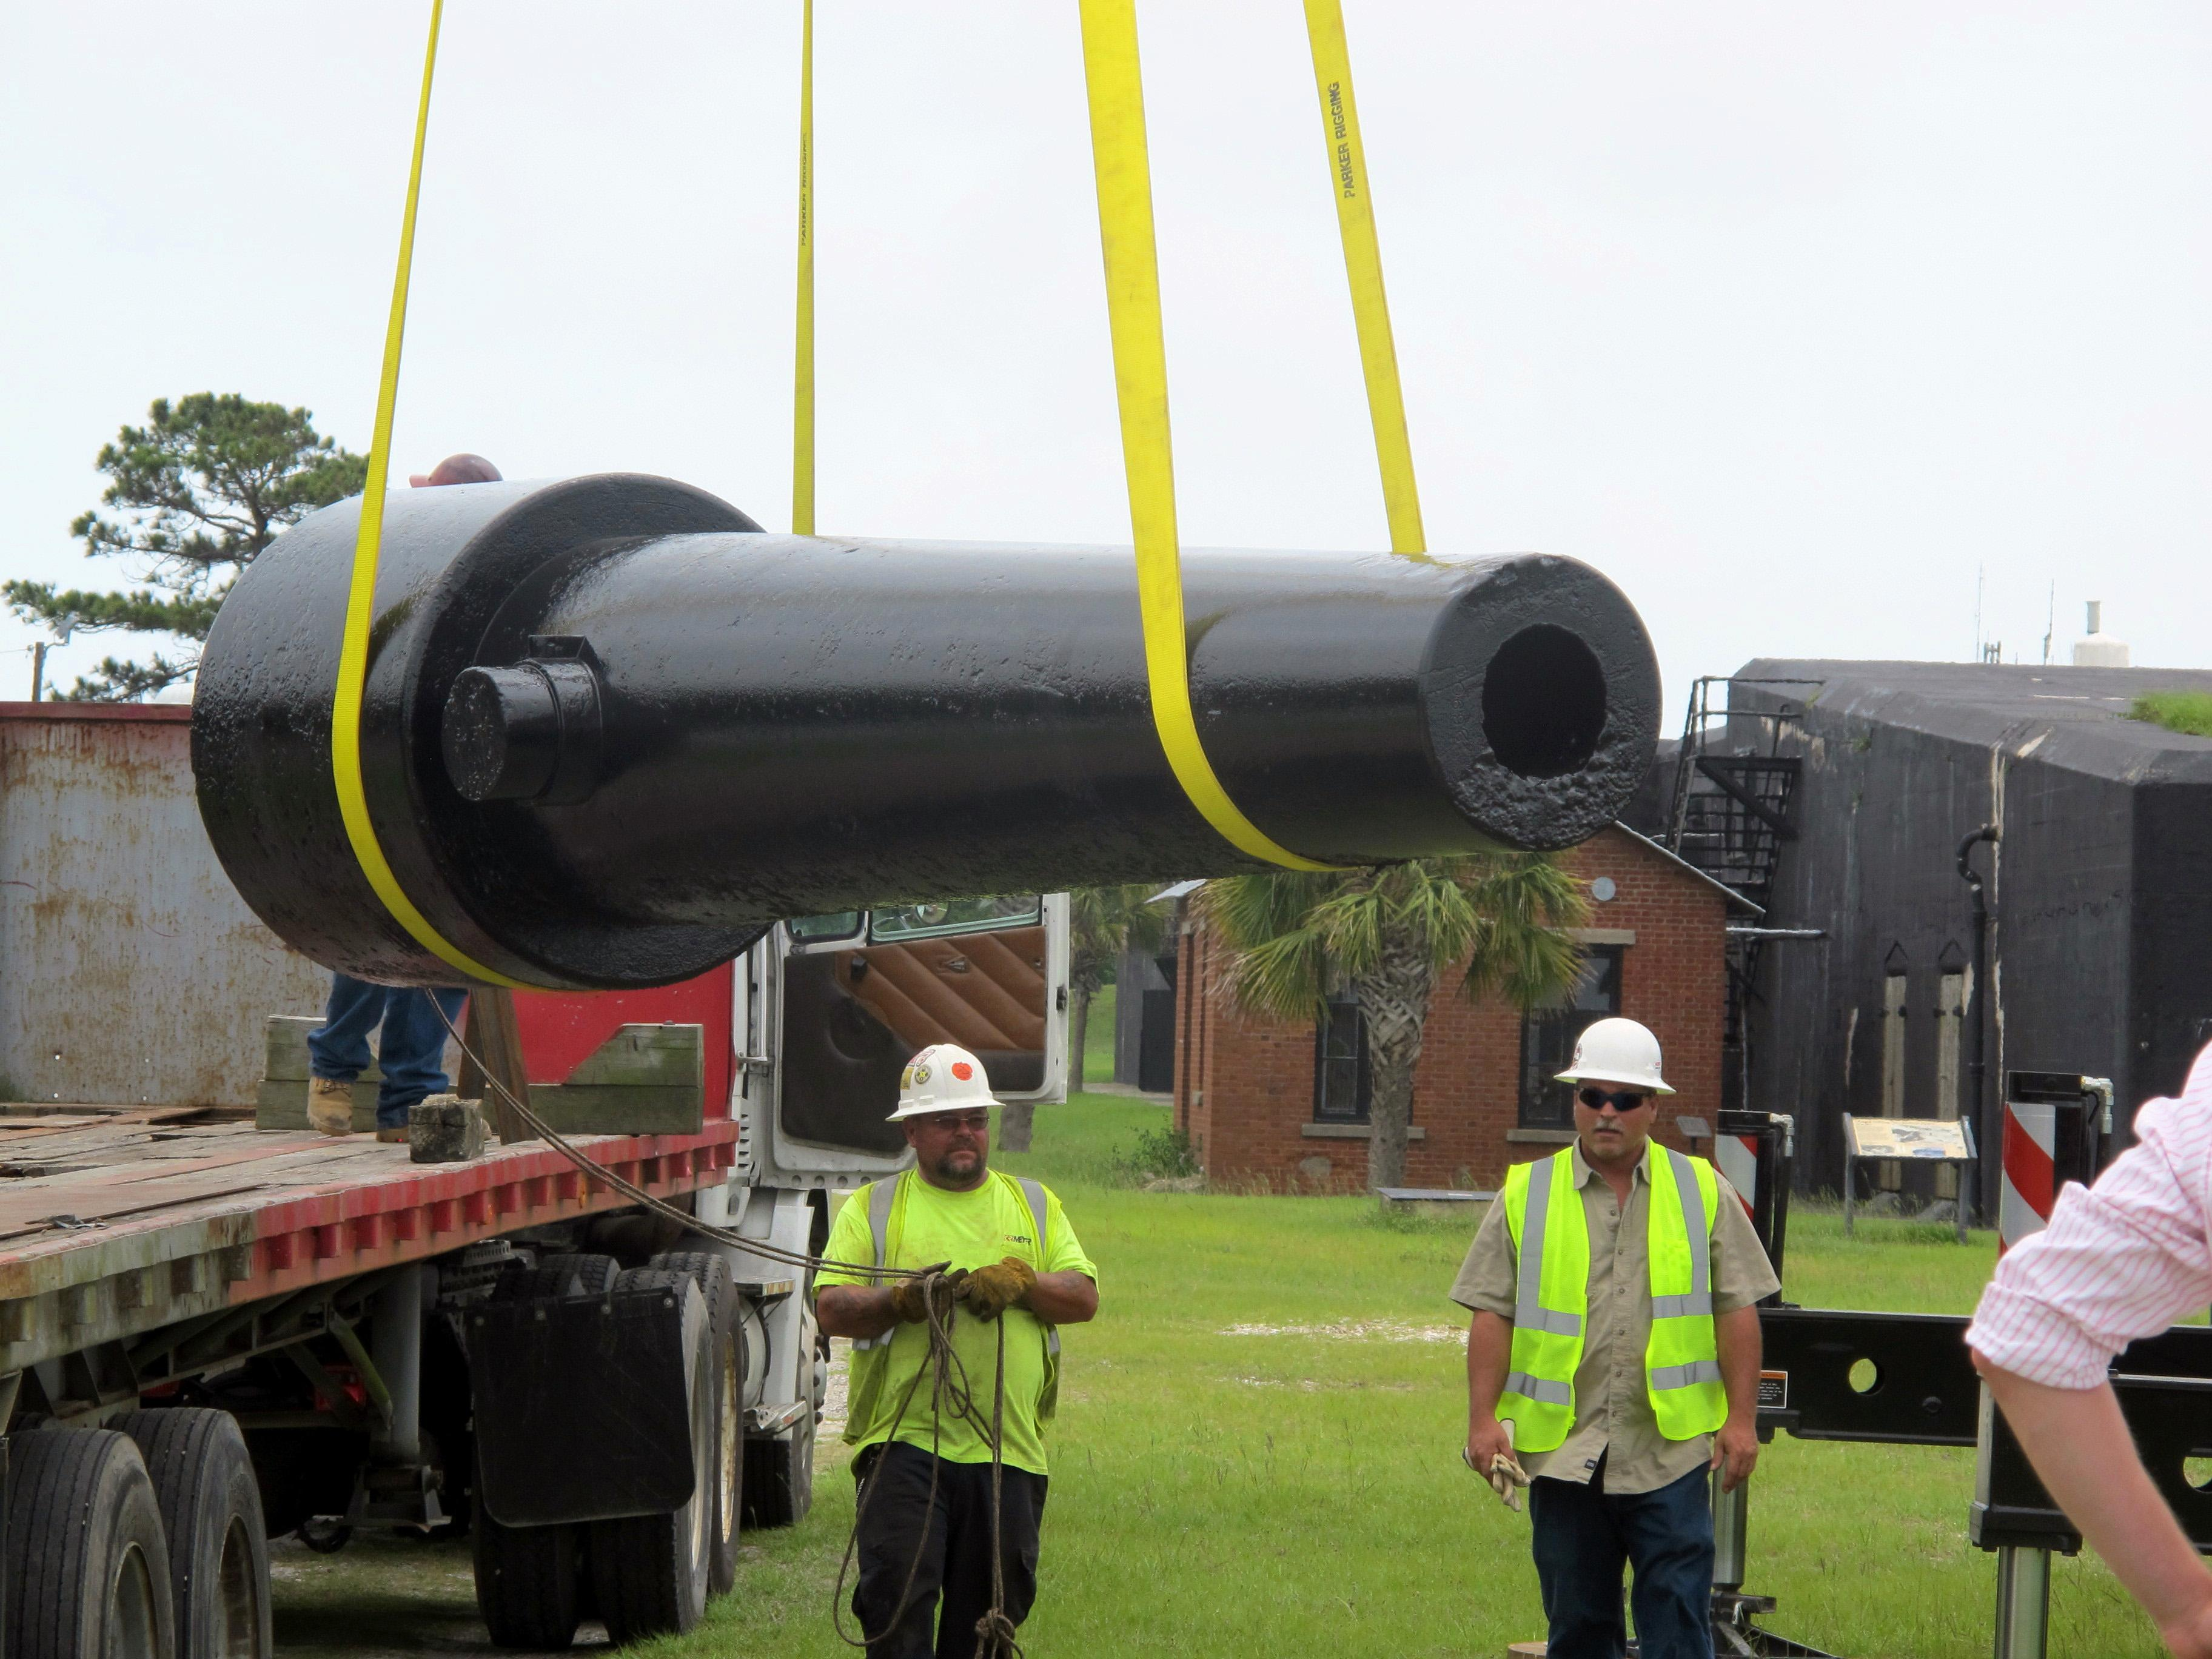 Workers move a Civil War cannon into position at Fort Moultrie on Sullivans Island, S.C., on June 10, 2013 after the gun was conserved. The fort, part of the Fort Sumter National Monument and from which Confederate gunners fired at Sumter in Charleston Harbor to open the Civil War in 1861, recently conserved 10 large cannon. The National Park Service is using computer sensors to monitor the temperature and humidity inside the guns. (AP Photo/Bruce Smith)